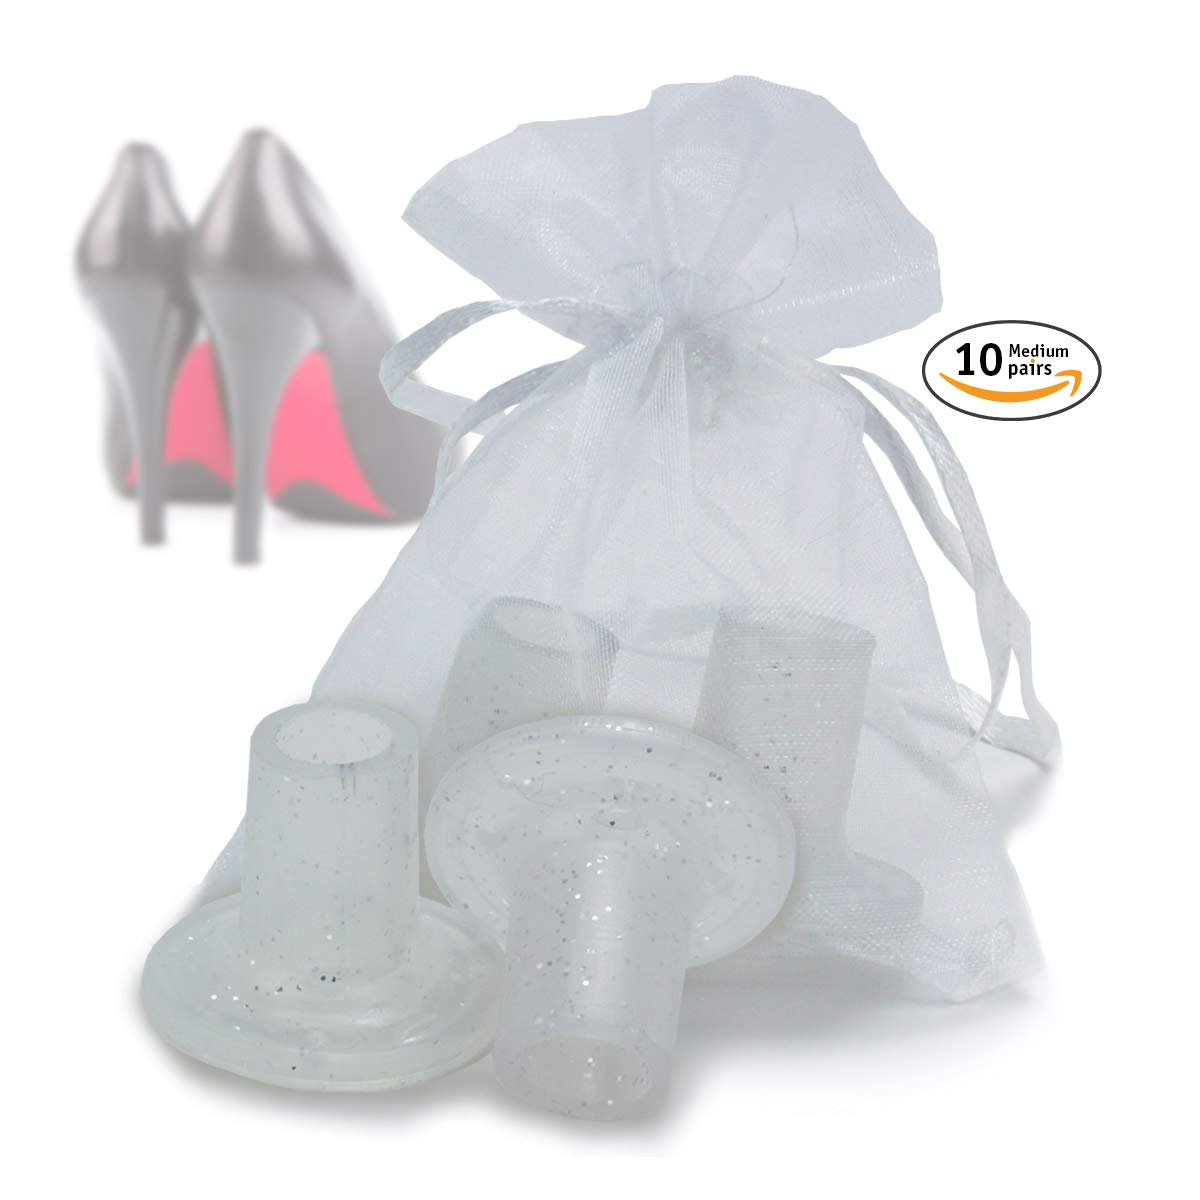 Wowly High Heel Protectors for Shoes -Pack of 10 Heel Savers (Medium Size)